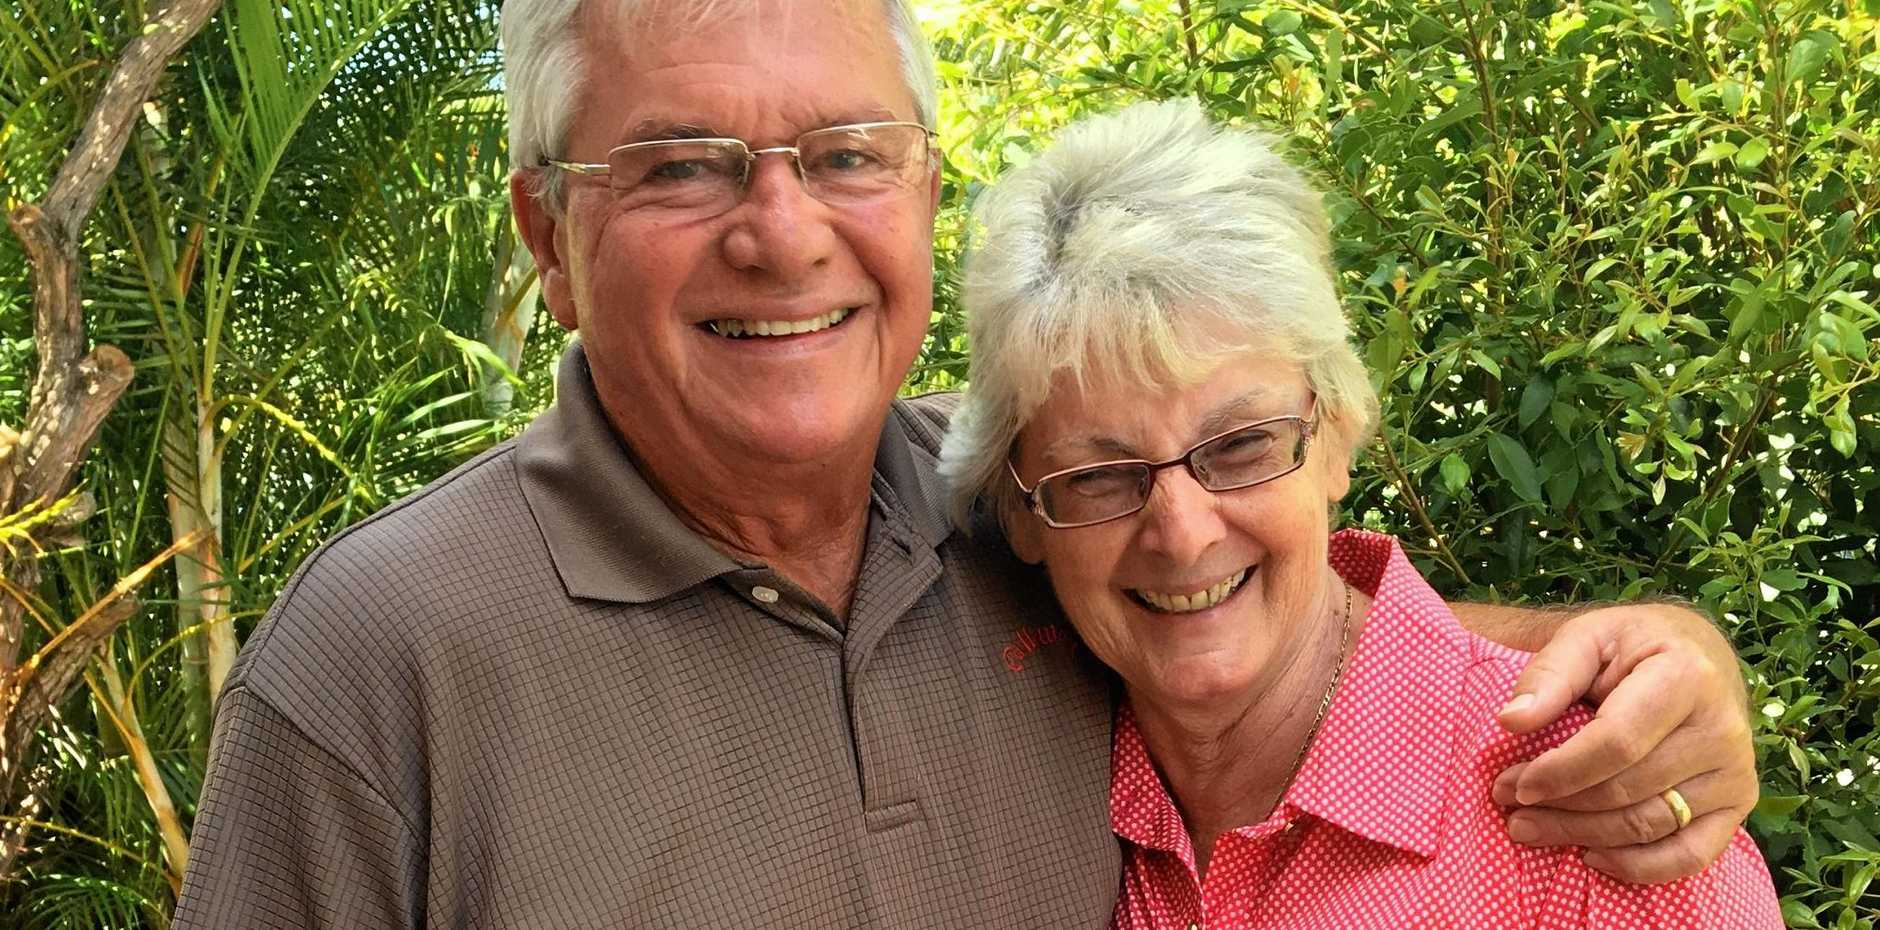 IN LOVE: Billy and Vera Gill celebrate their 50th wedding anniversary today.